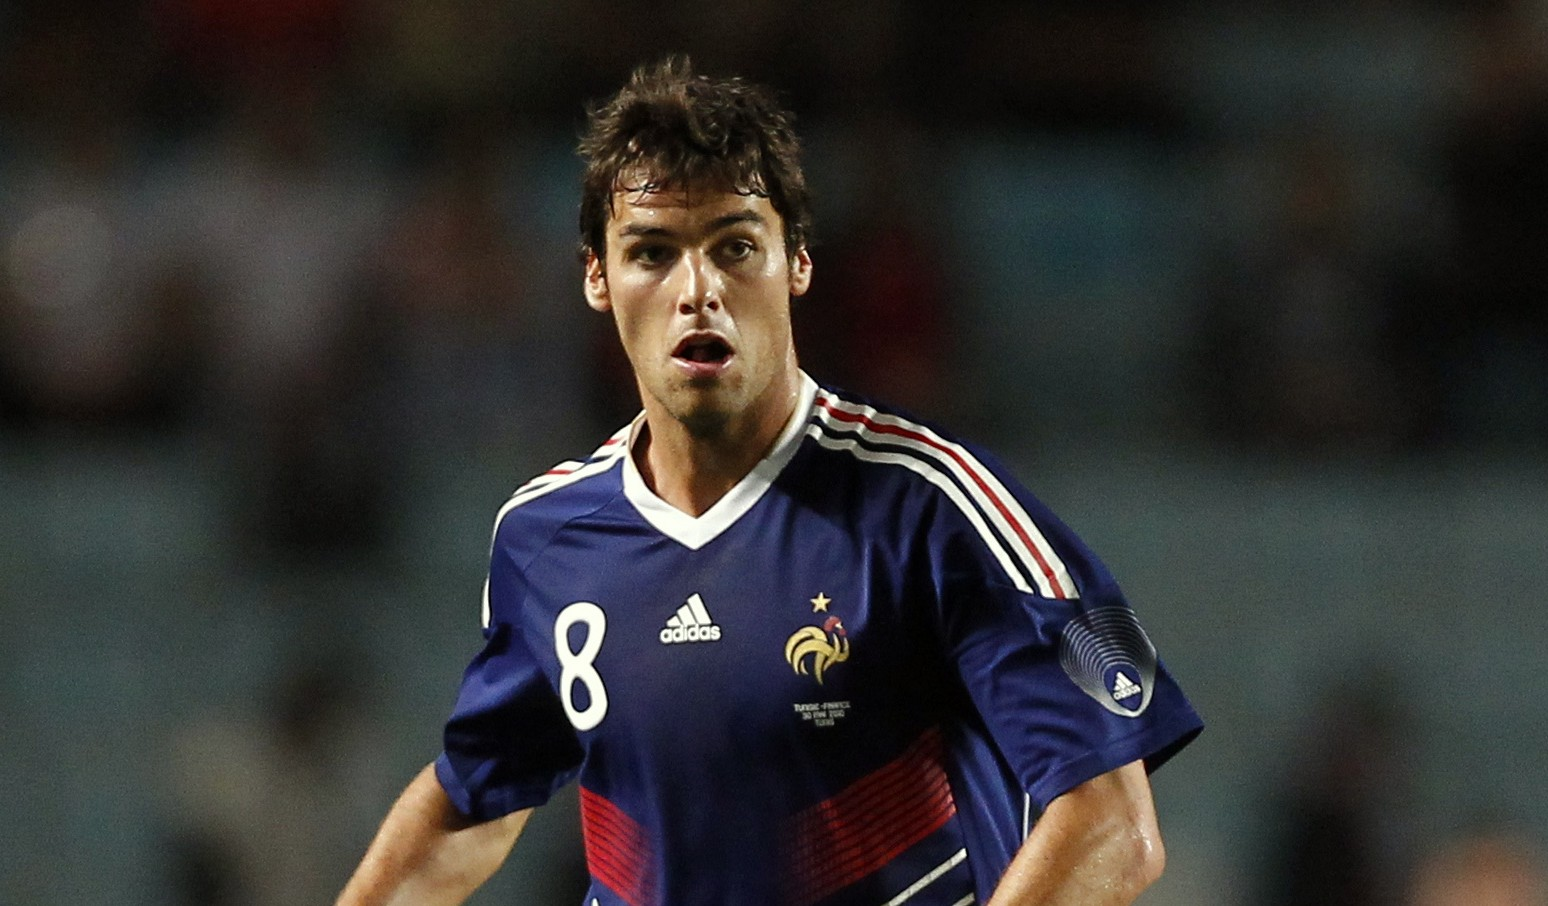 Arsenal have been offered a cut-price deal for Yoann Gourcuff